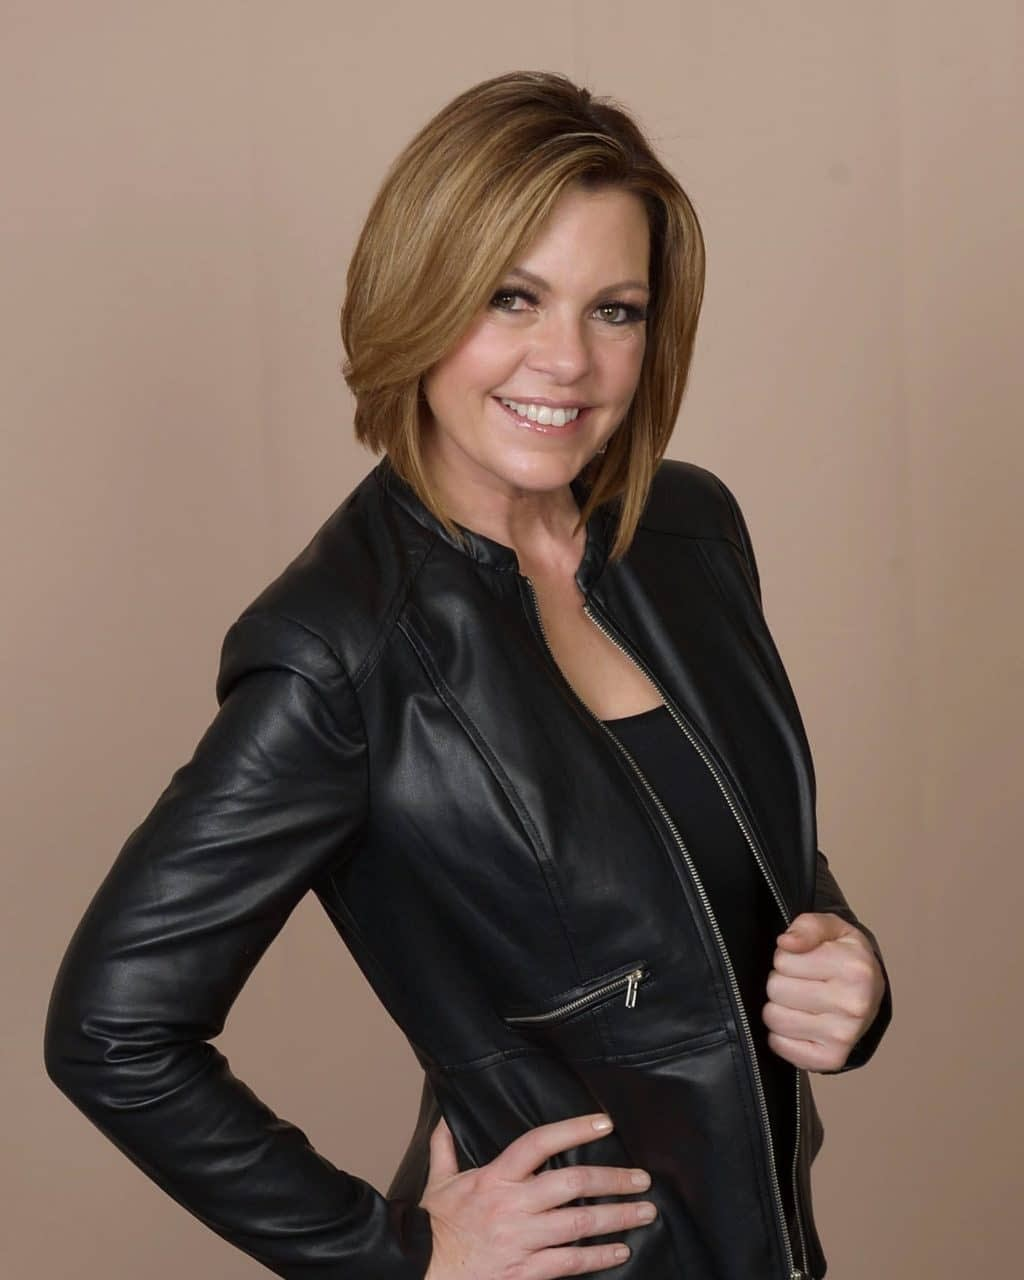 Lori Ballen Keto coach is standing confidently with her leather jacket